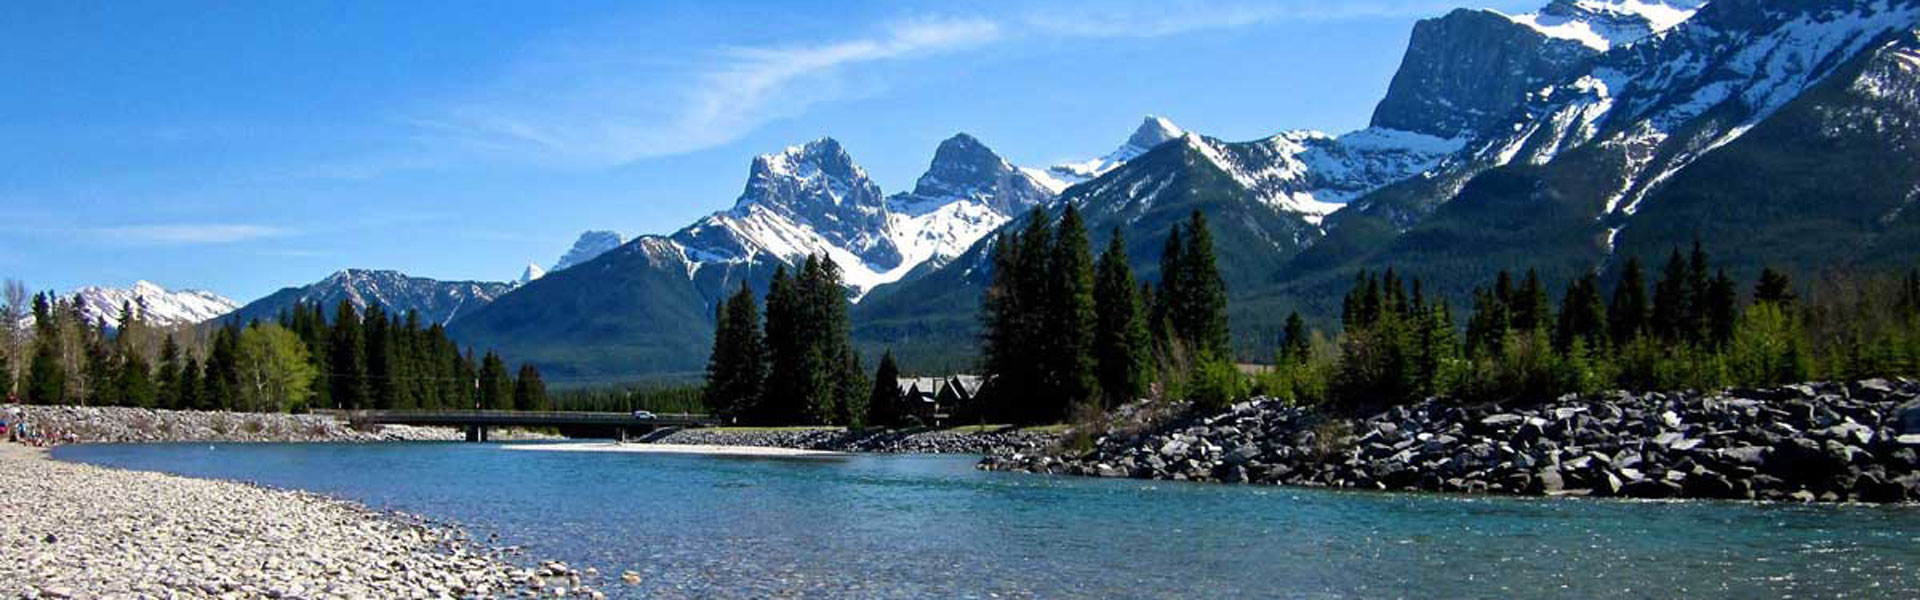 Western Canada Rail Vacations | Bow River